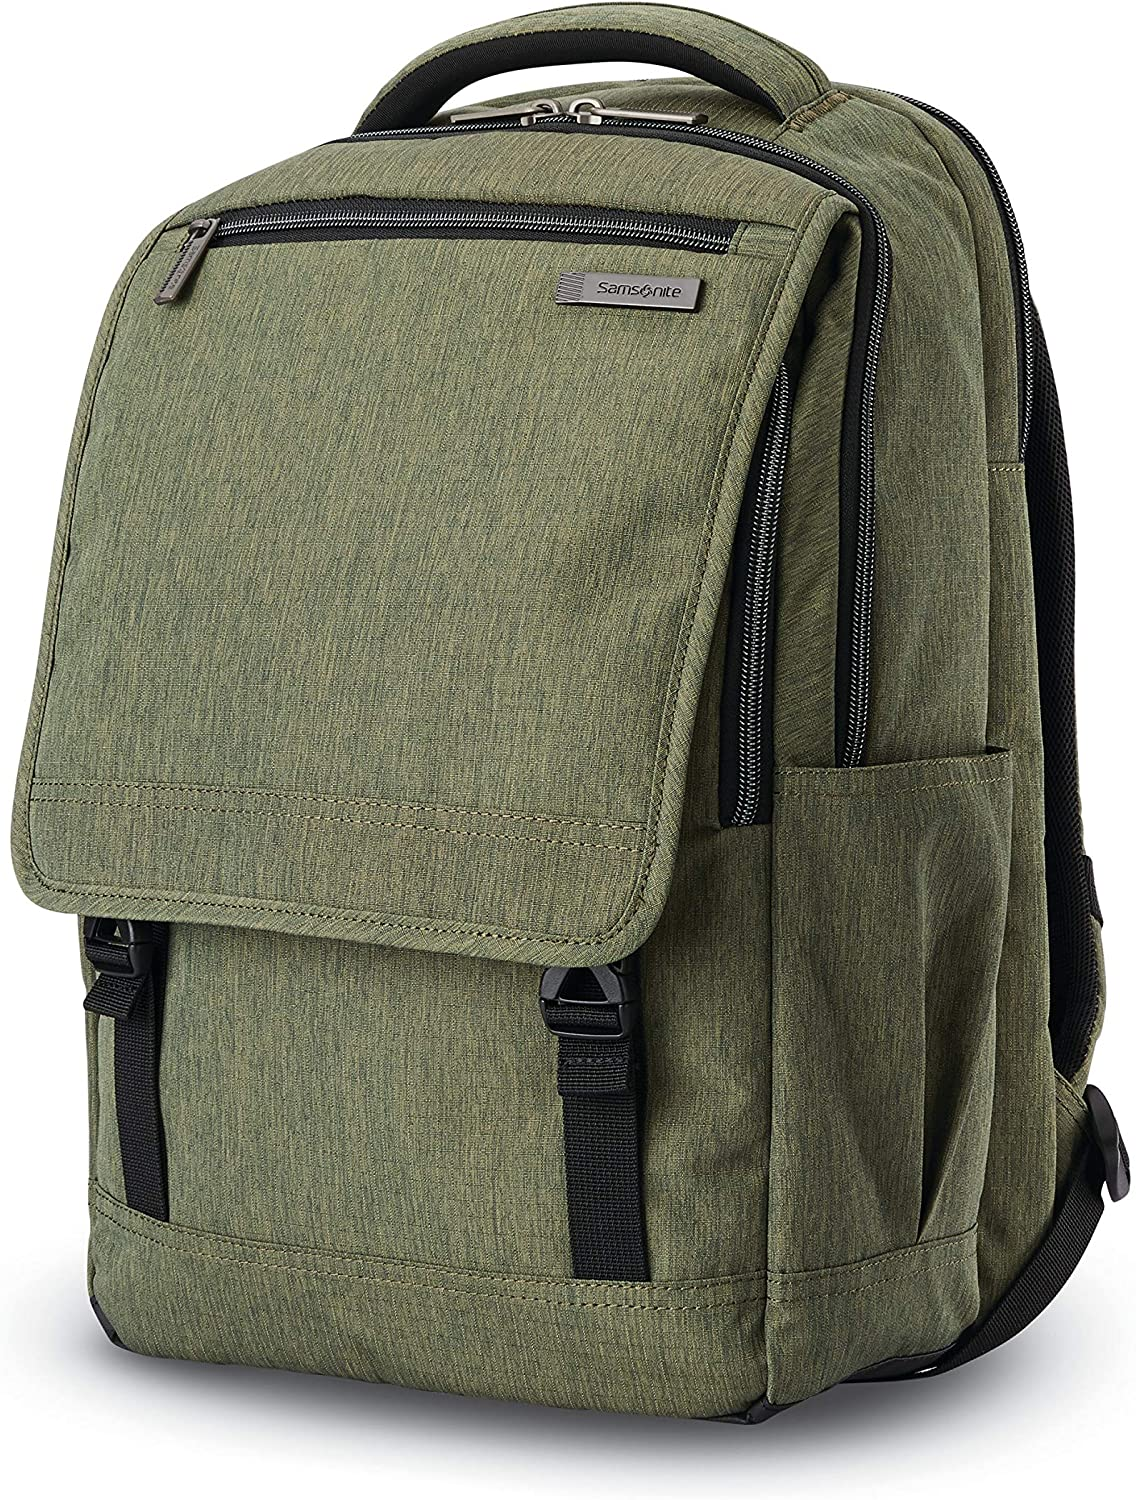 Samsonite Modern Utility Paracycle Laptop Backpack, Olive, One Size